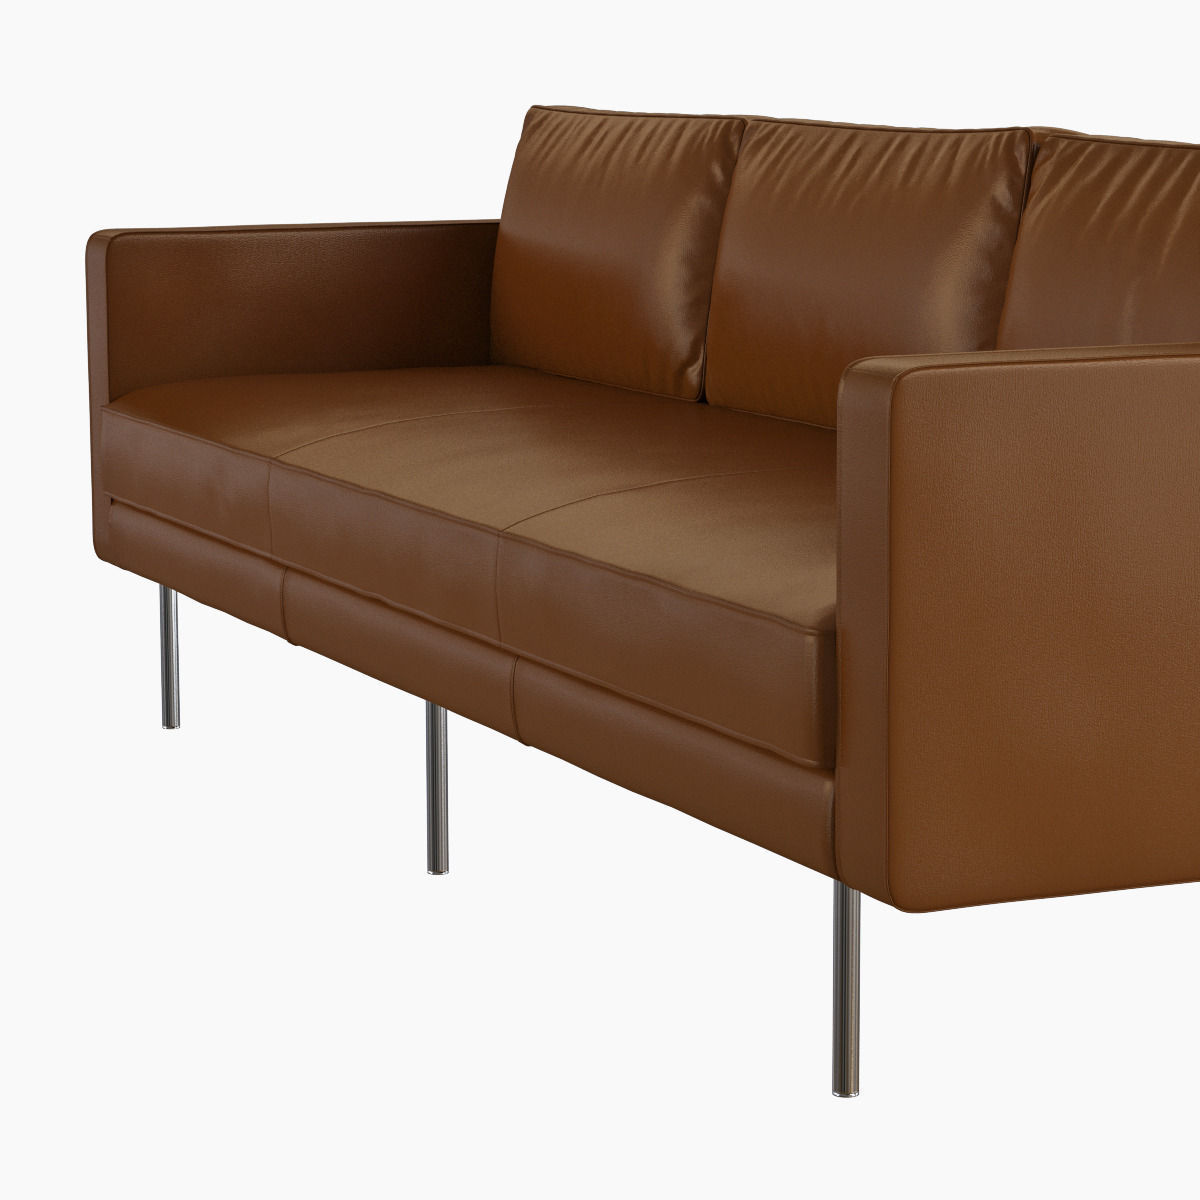 ... West Elm Axel Leather Sofa 3d Model Max Obj Fbx Mtl 4 ...